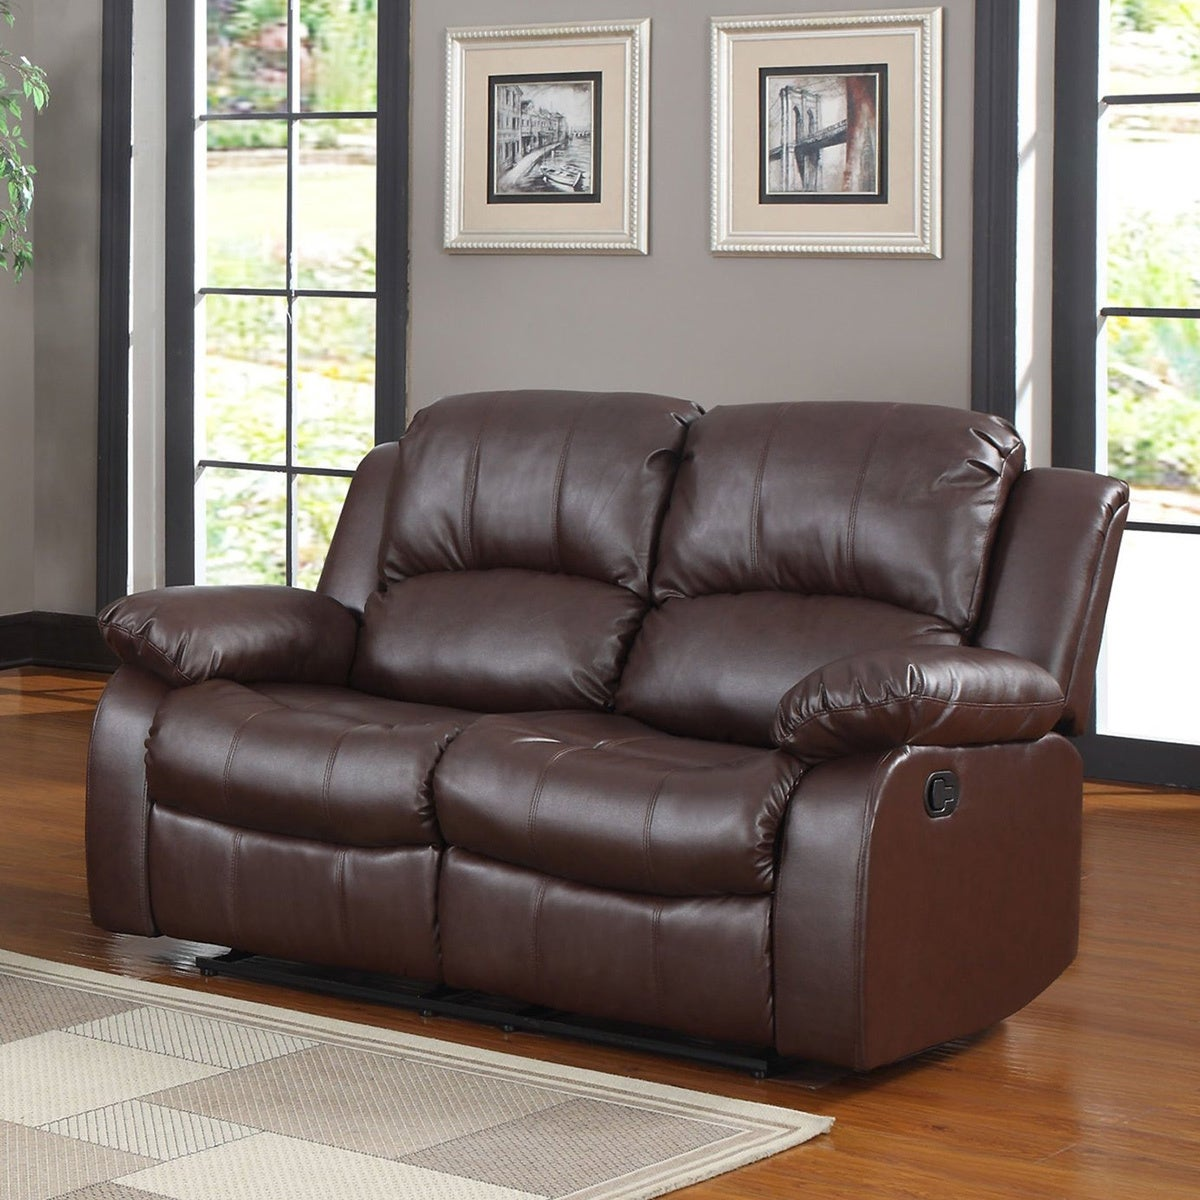 container loveseat uncategorized brown recliner comfortable cool his rectangular people feet there sit foot double two leather iron rest is excellent shape design black glass a and to